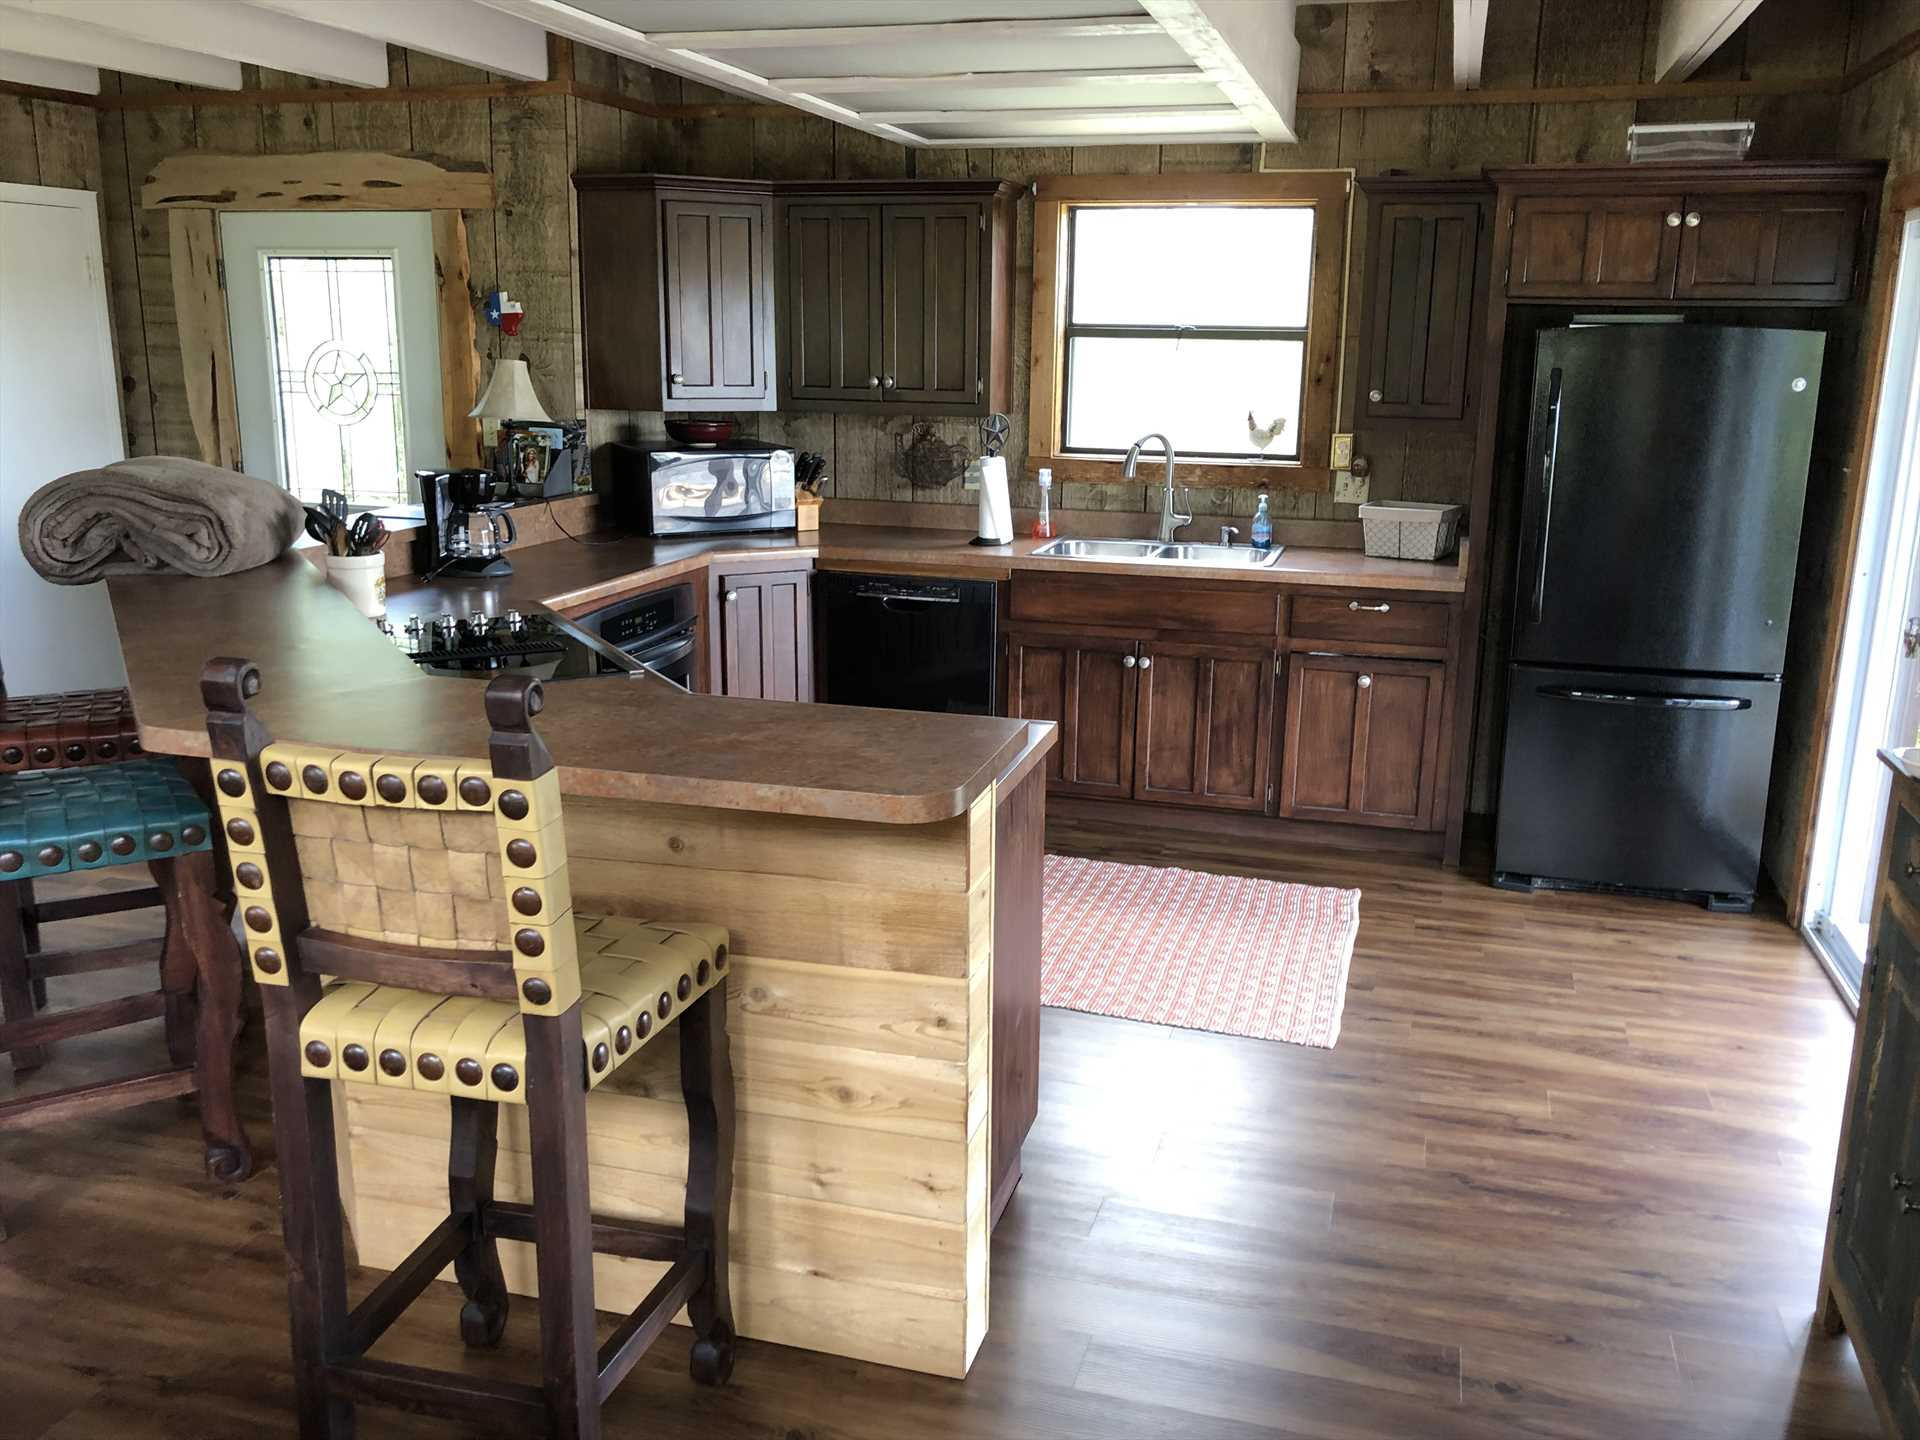 Modern appliances, plenty of counter space, and cooking and serving ware and utensils make the kitchen a delight for cooks and foodies alike!